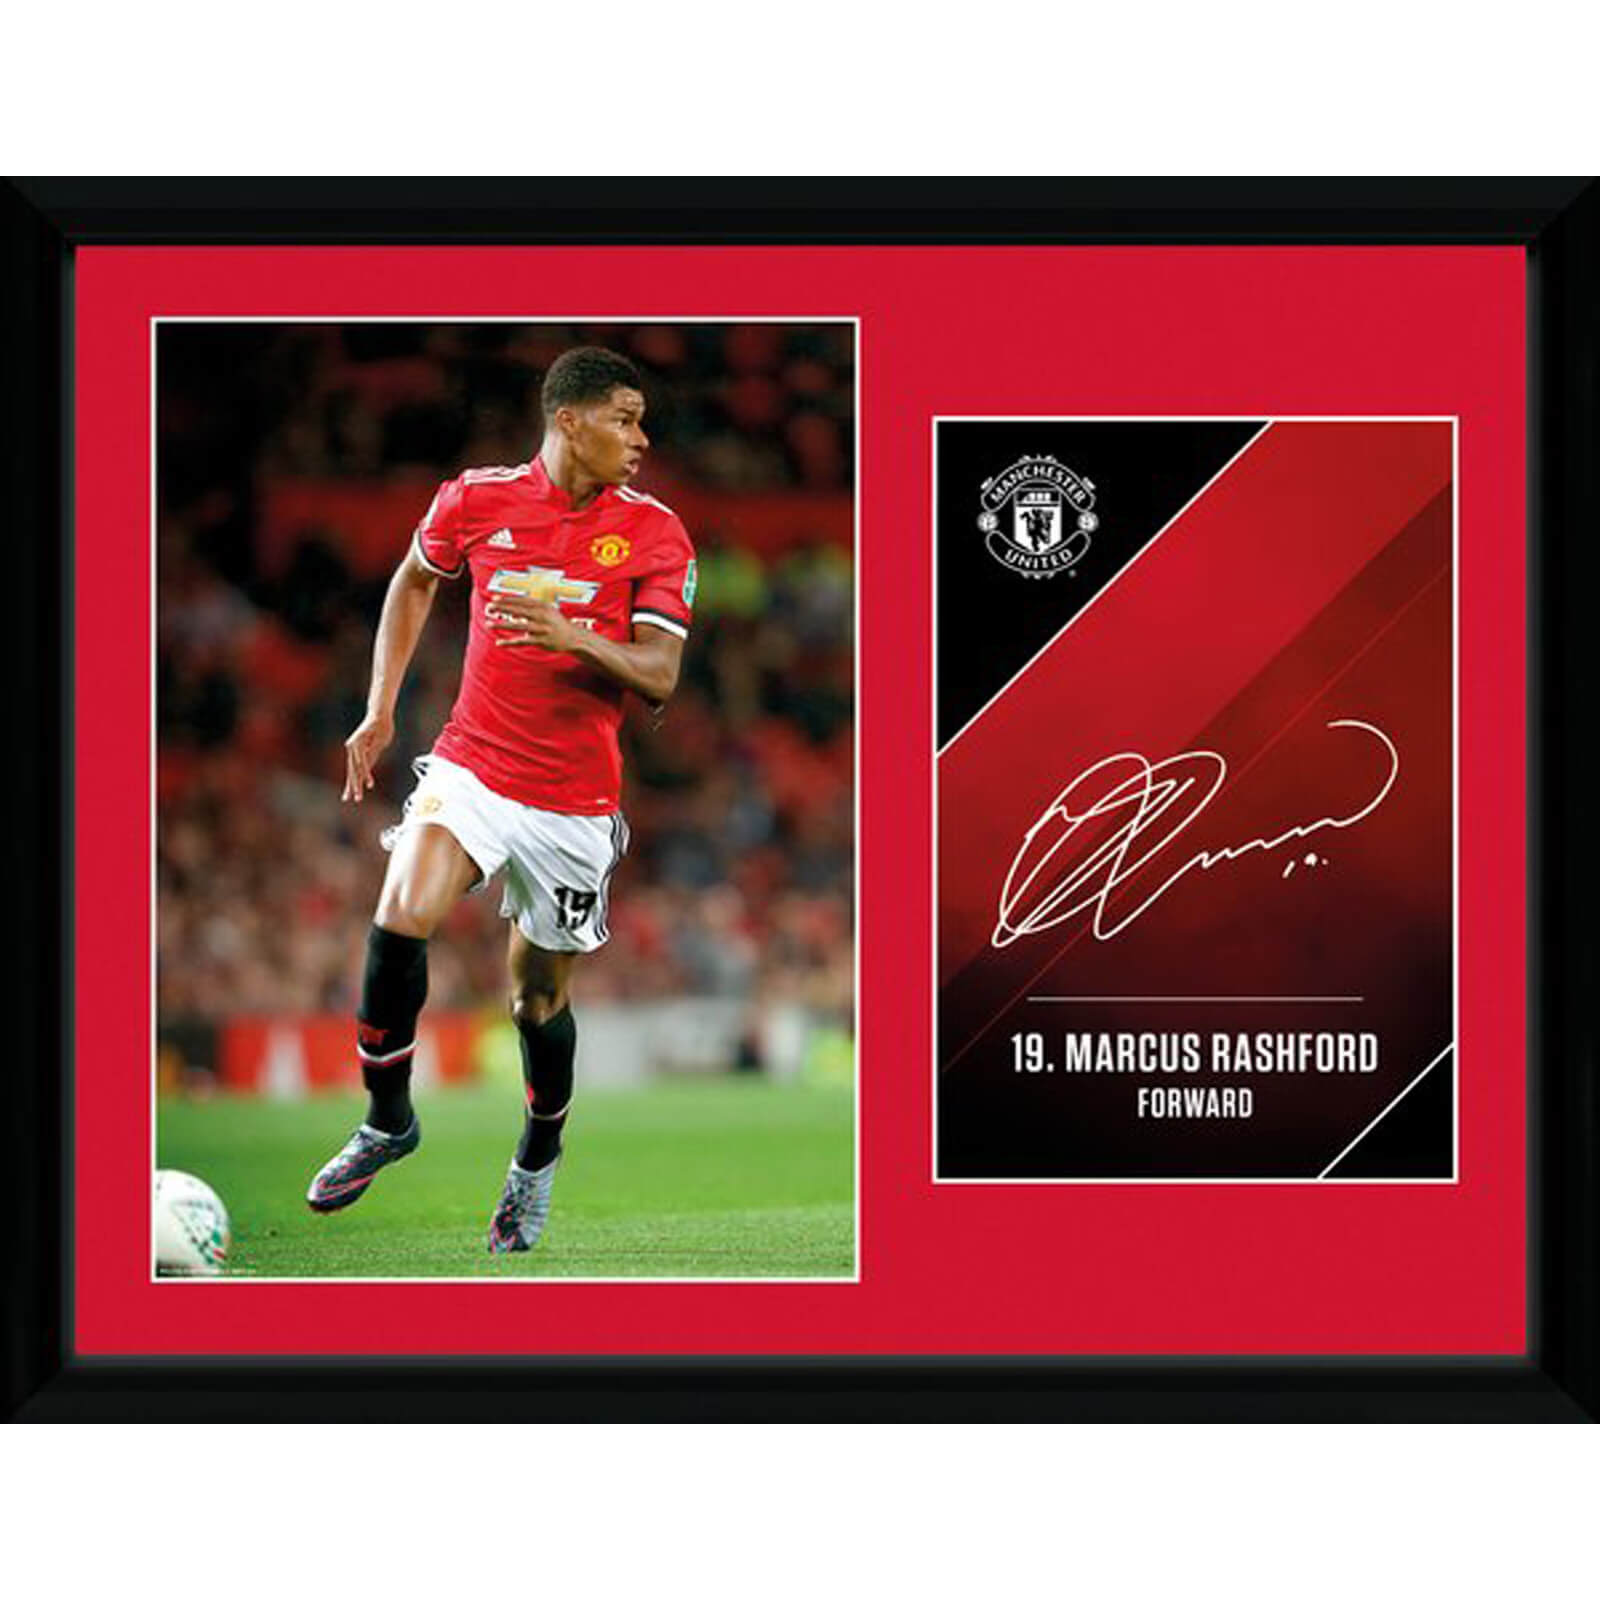 Manchester United Rashford 17/18 12 x 16 Inches Framed Photograph